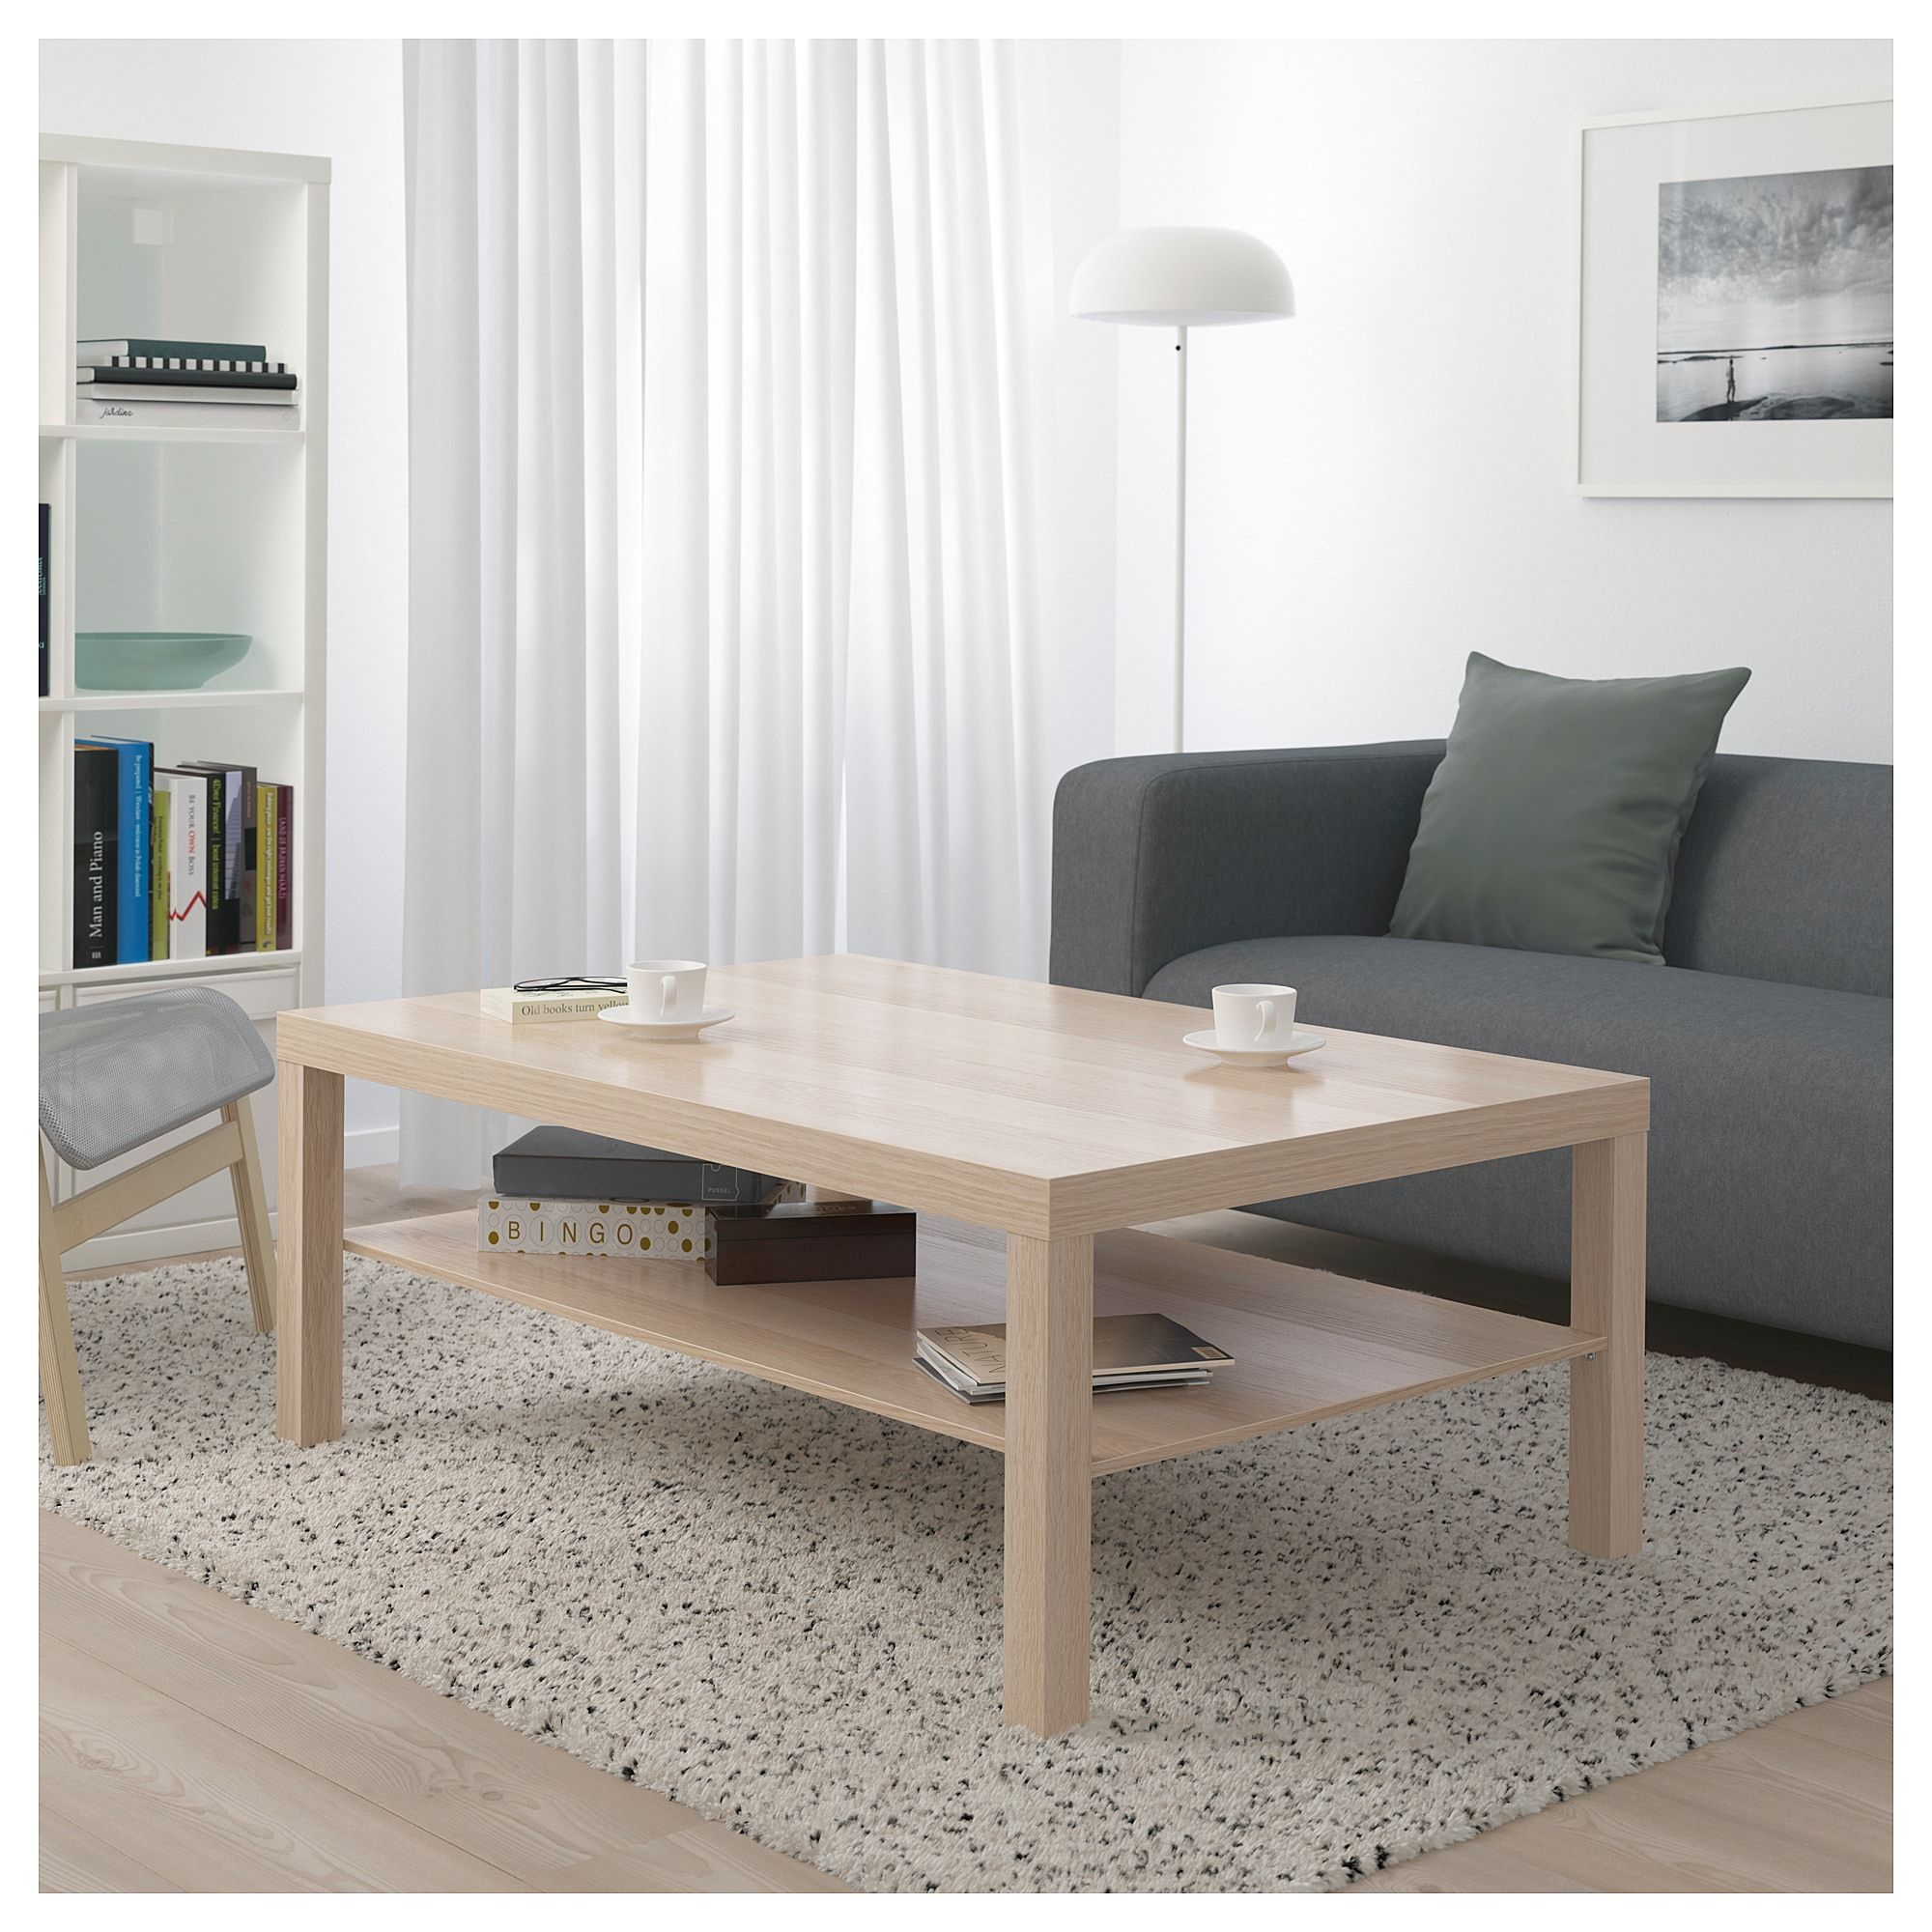 Lack Coffee Table White Stained Oak Effect 46 1 2x30 3 4 Ikea Ikea Lack Coffee Table Lack Coffee Table Ikea Coffee Table [ 2000 x 2000 Pixel ]